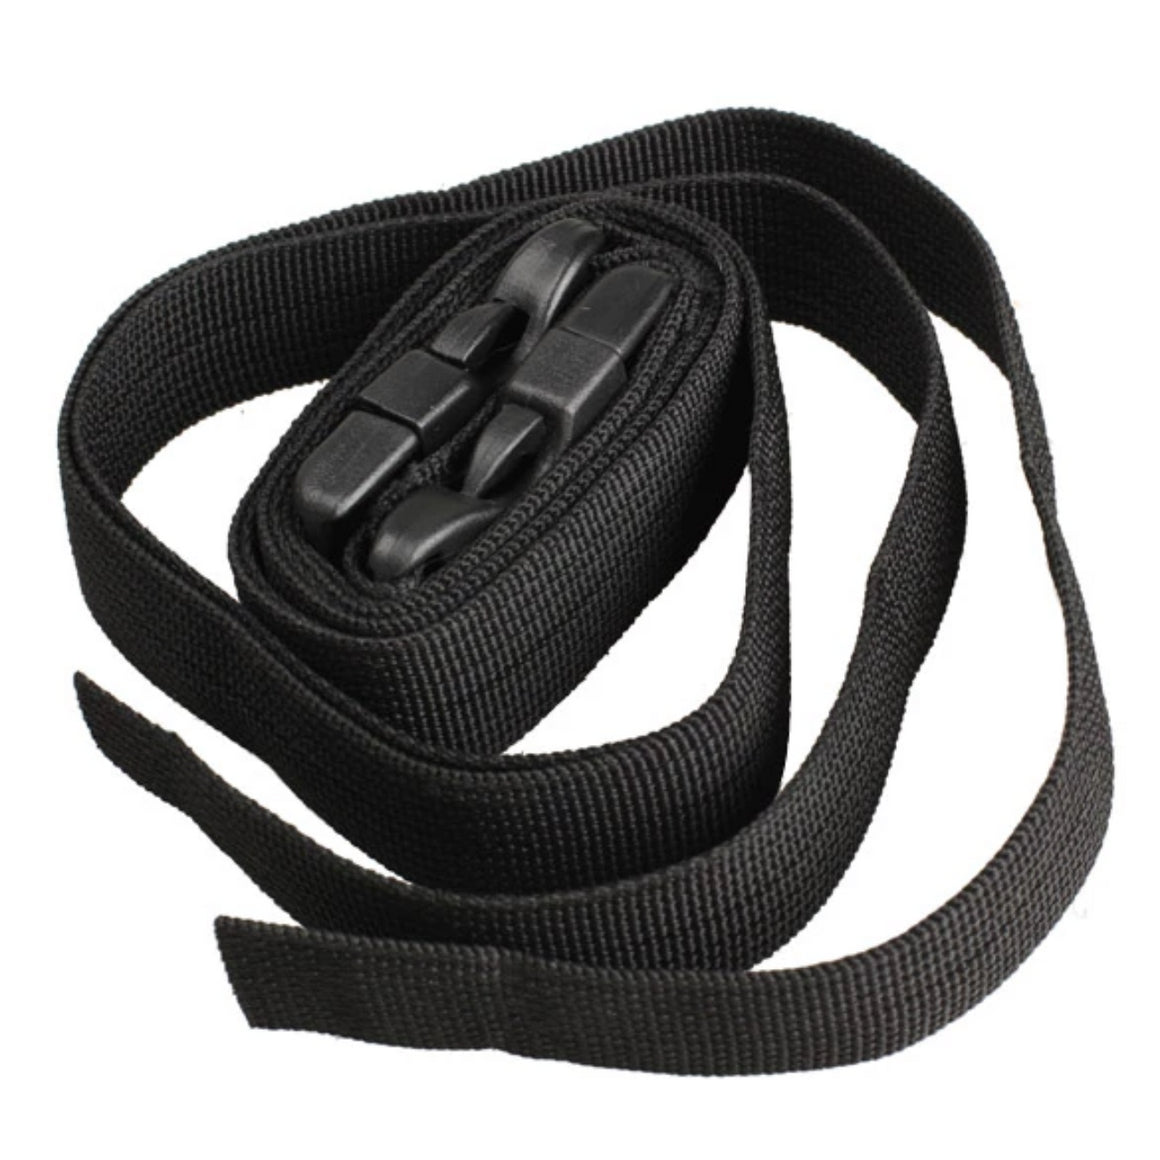 2Pcs Black Adjustable Nylon Travel  Luggage  Bind Band Strap Bag Accessories LXX9